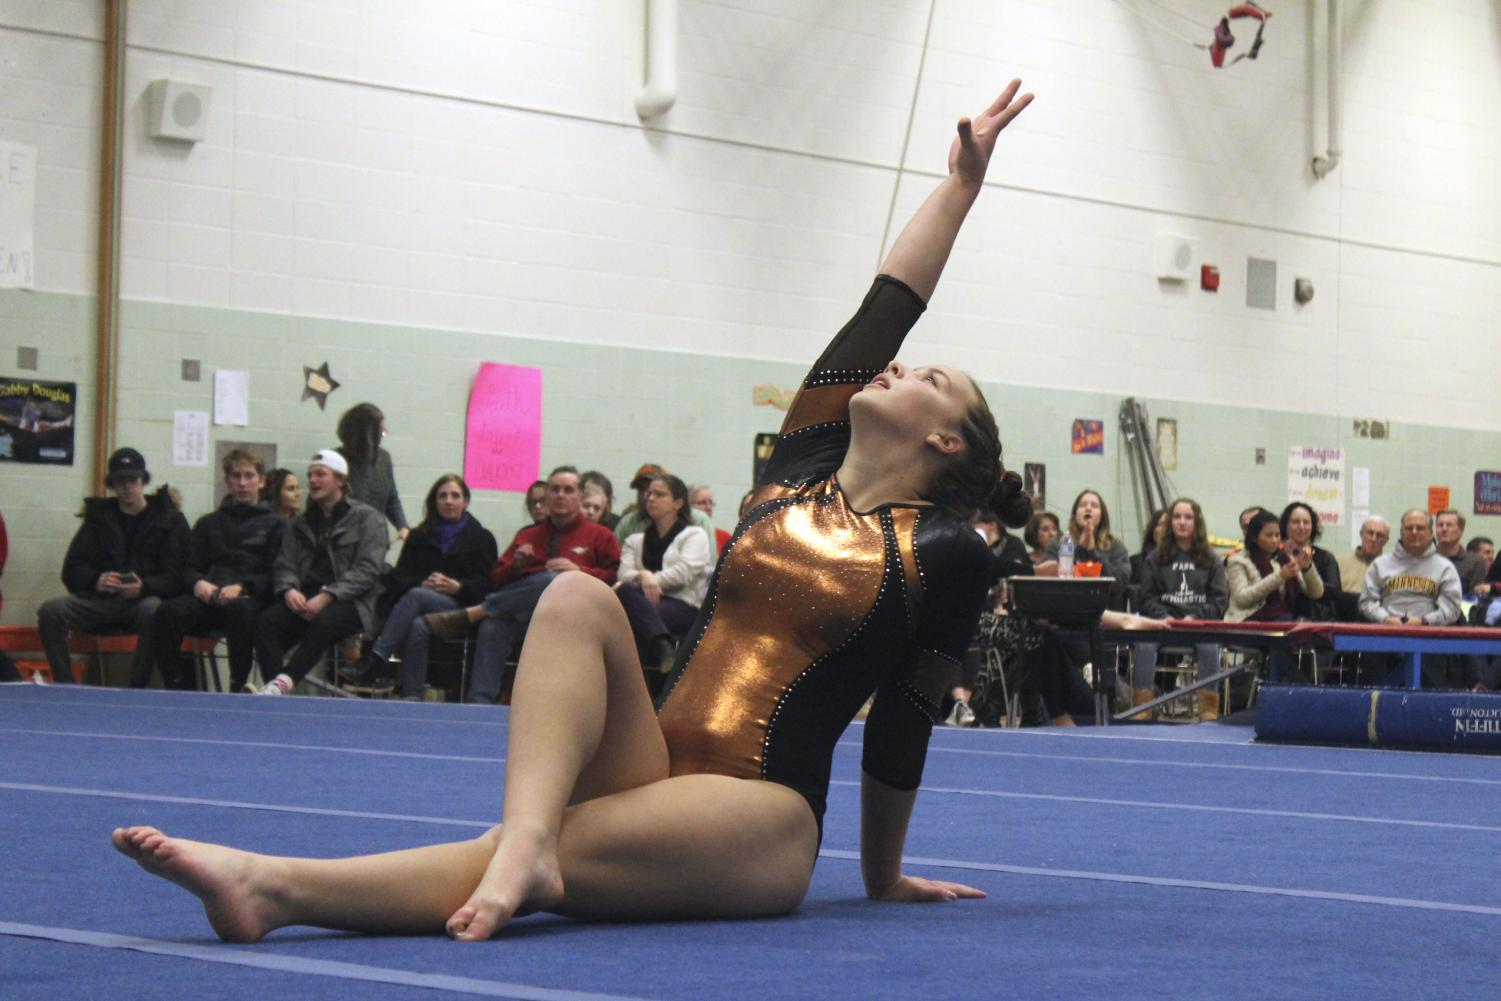 Sophomore Marissa Beottcher poses at the end of her floor routine.  St. Louis Park gymnastics took on Richfield at 7 p.m Tuesday Dec. 11 at Central Community Center.